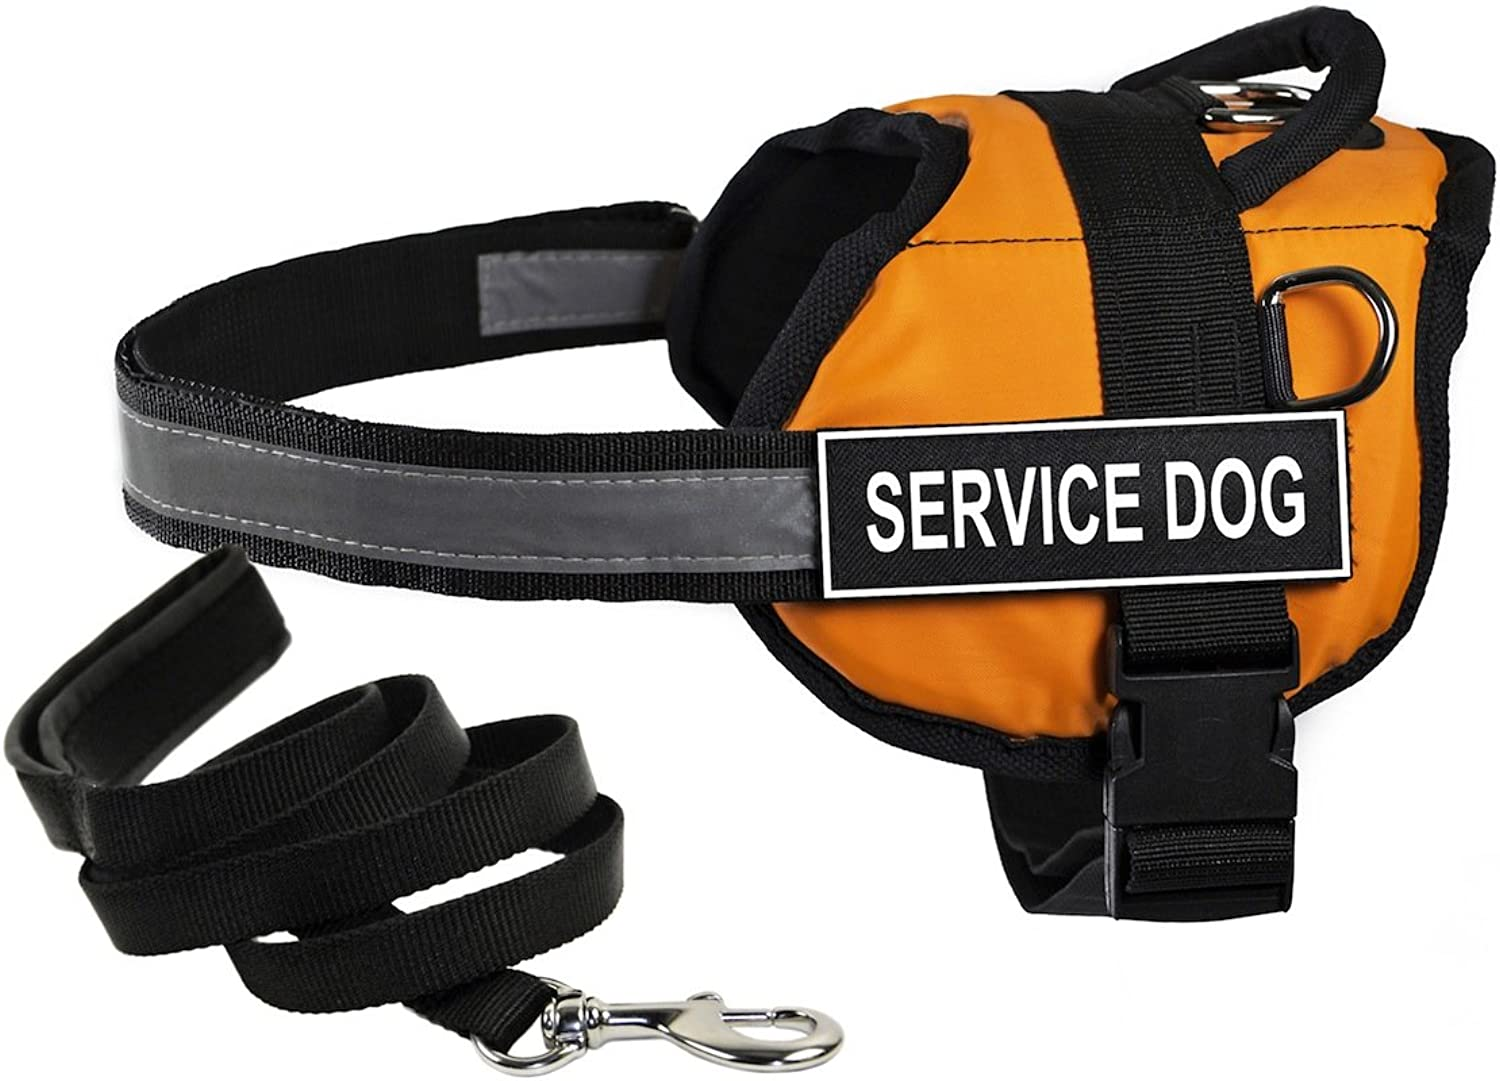 Dean & Tyler's DT Works orange SERVICE DOG Harness, XSmall, with 6 ft Padded Puppy Leash.